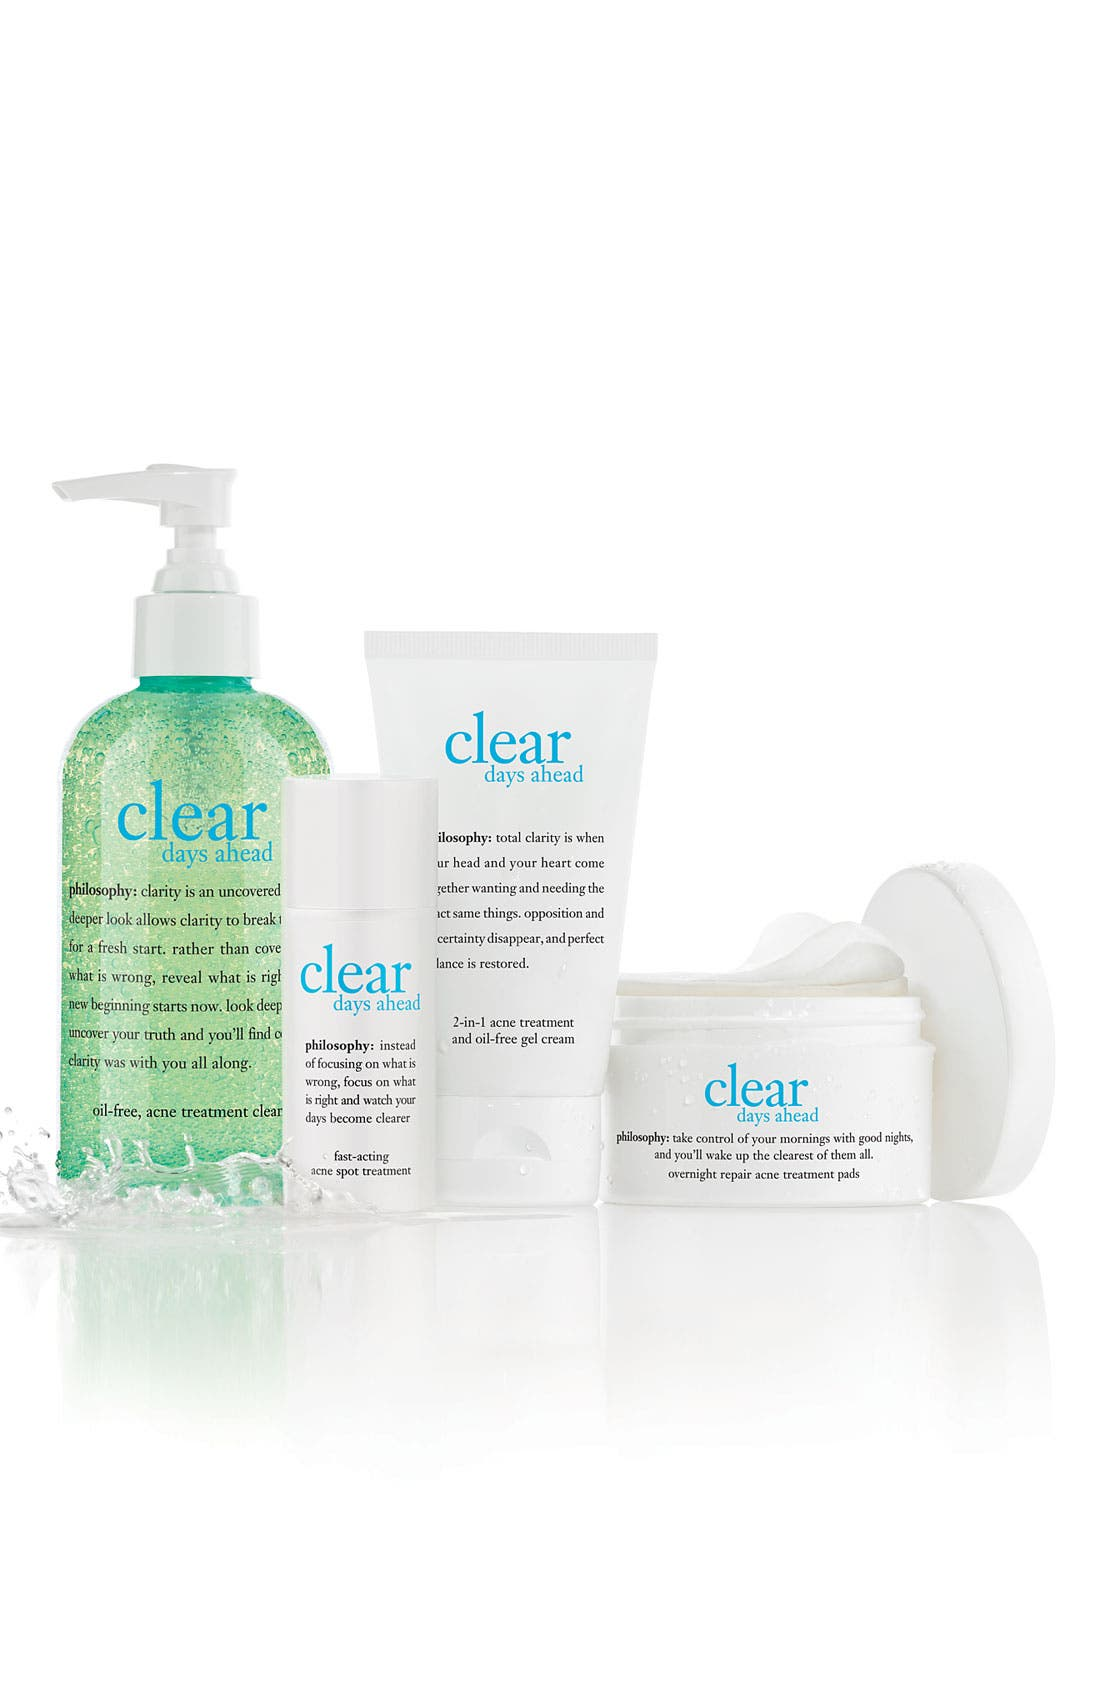 'clear days ahead overnight repair' acne treatment pads,                             Alternate thumbnail 2, color,                             000